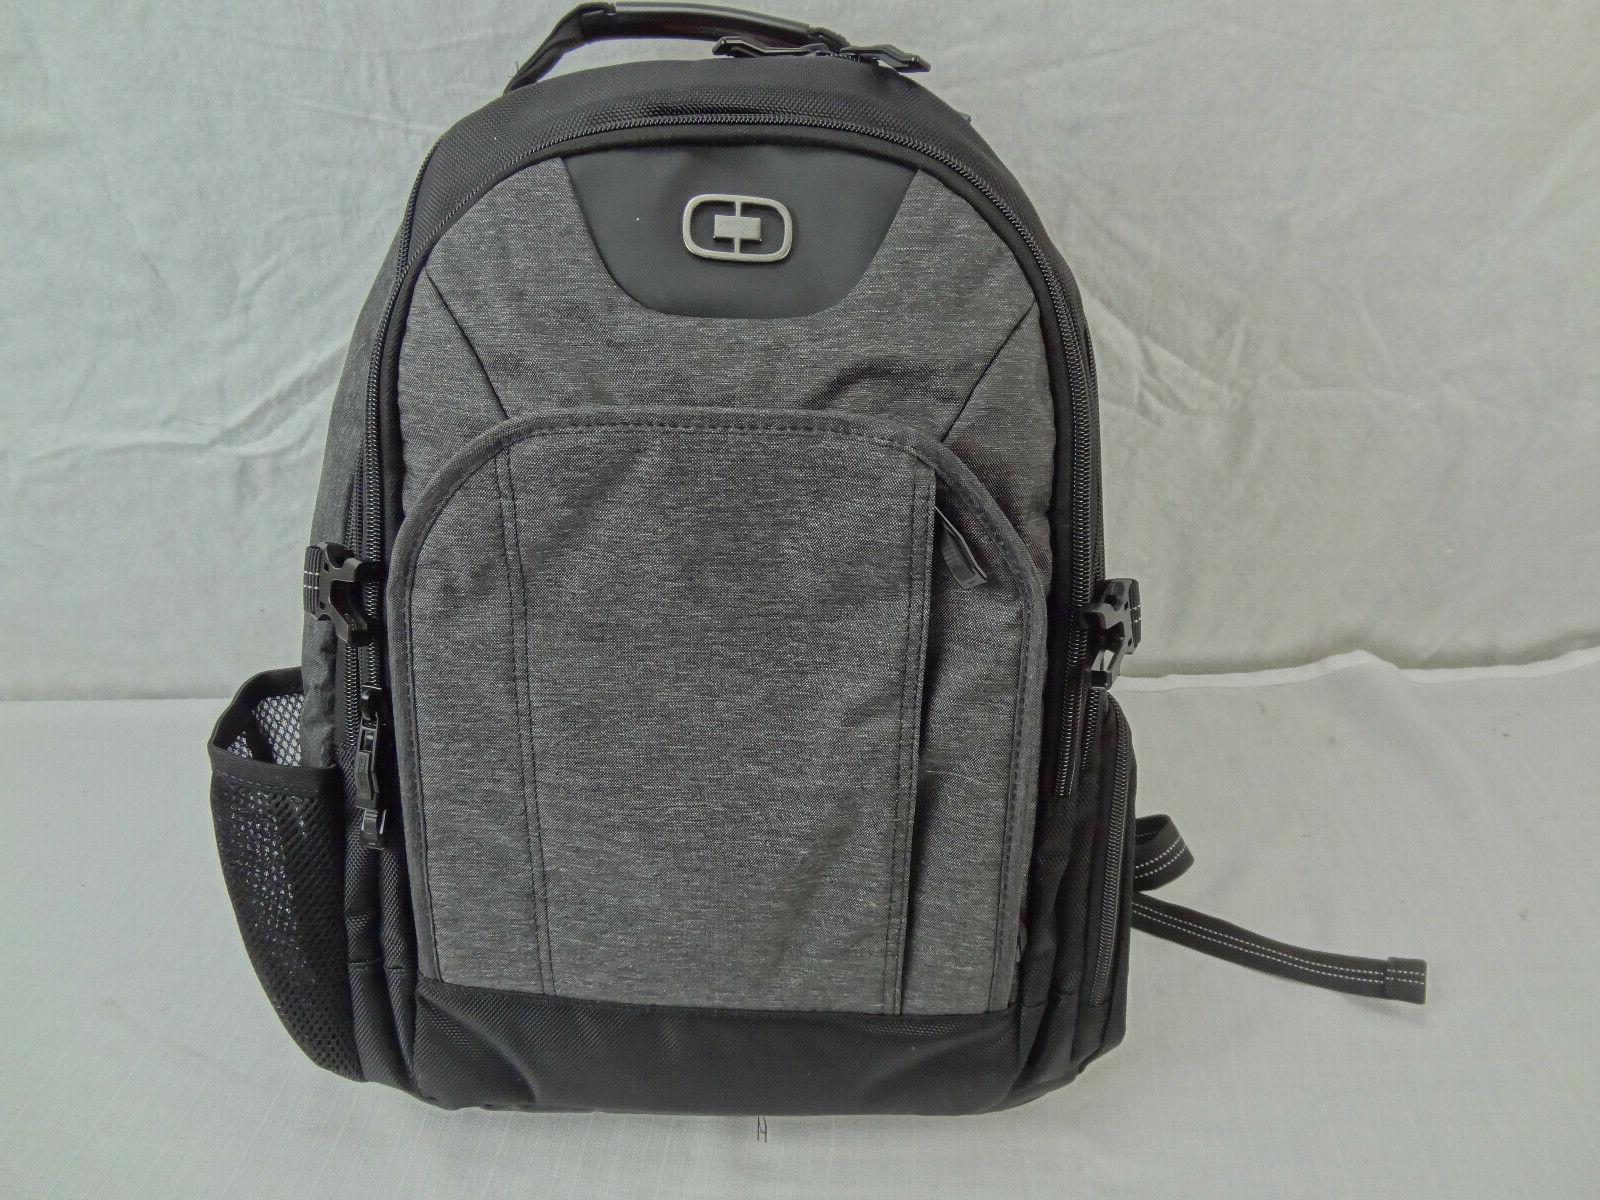 prospect professional utility backpack gray fits 17